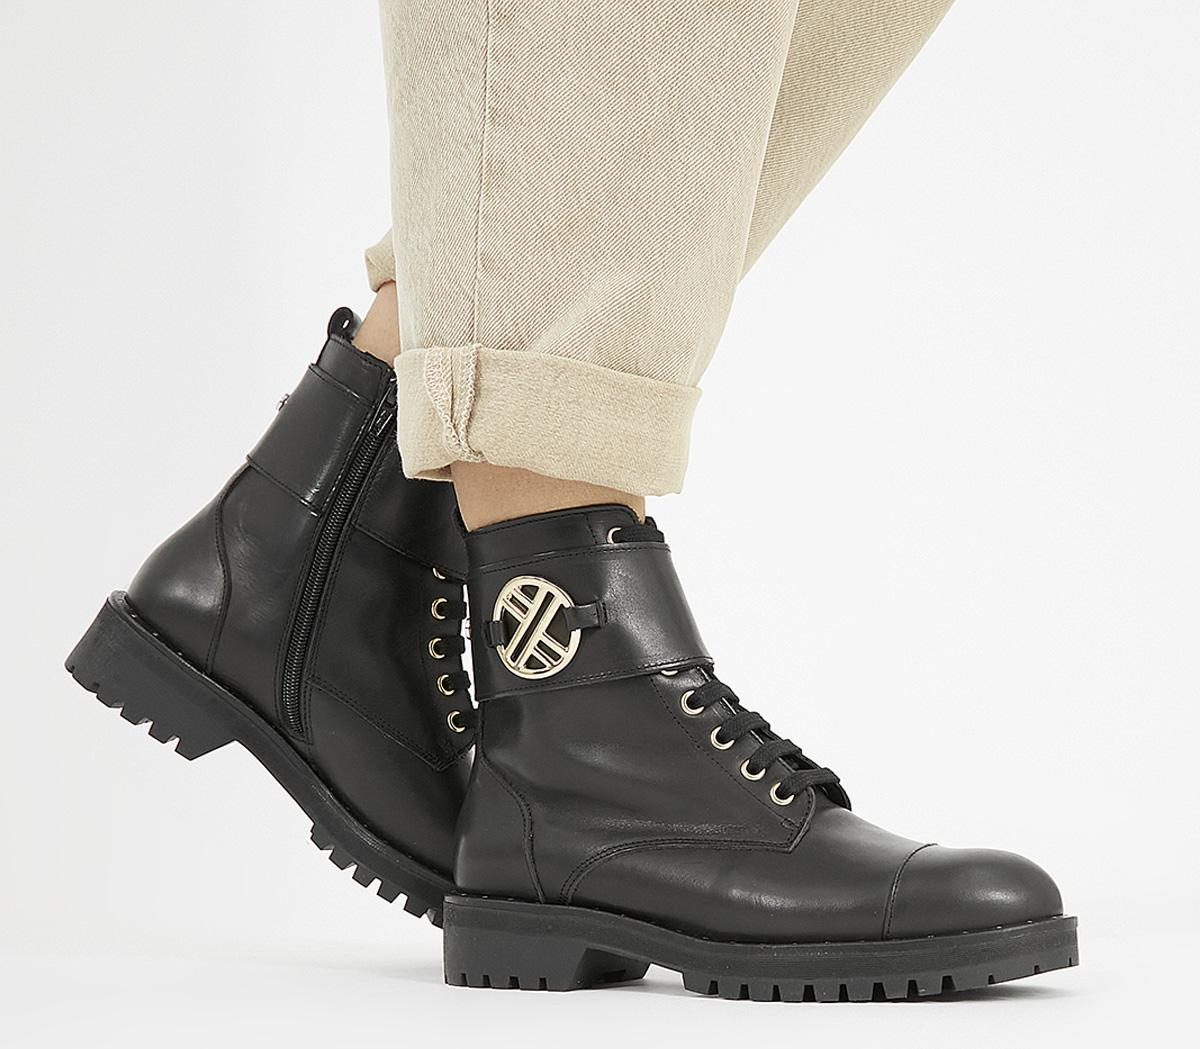 Ambiguous Lace Up Boots